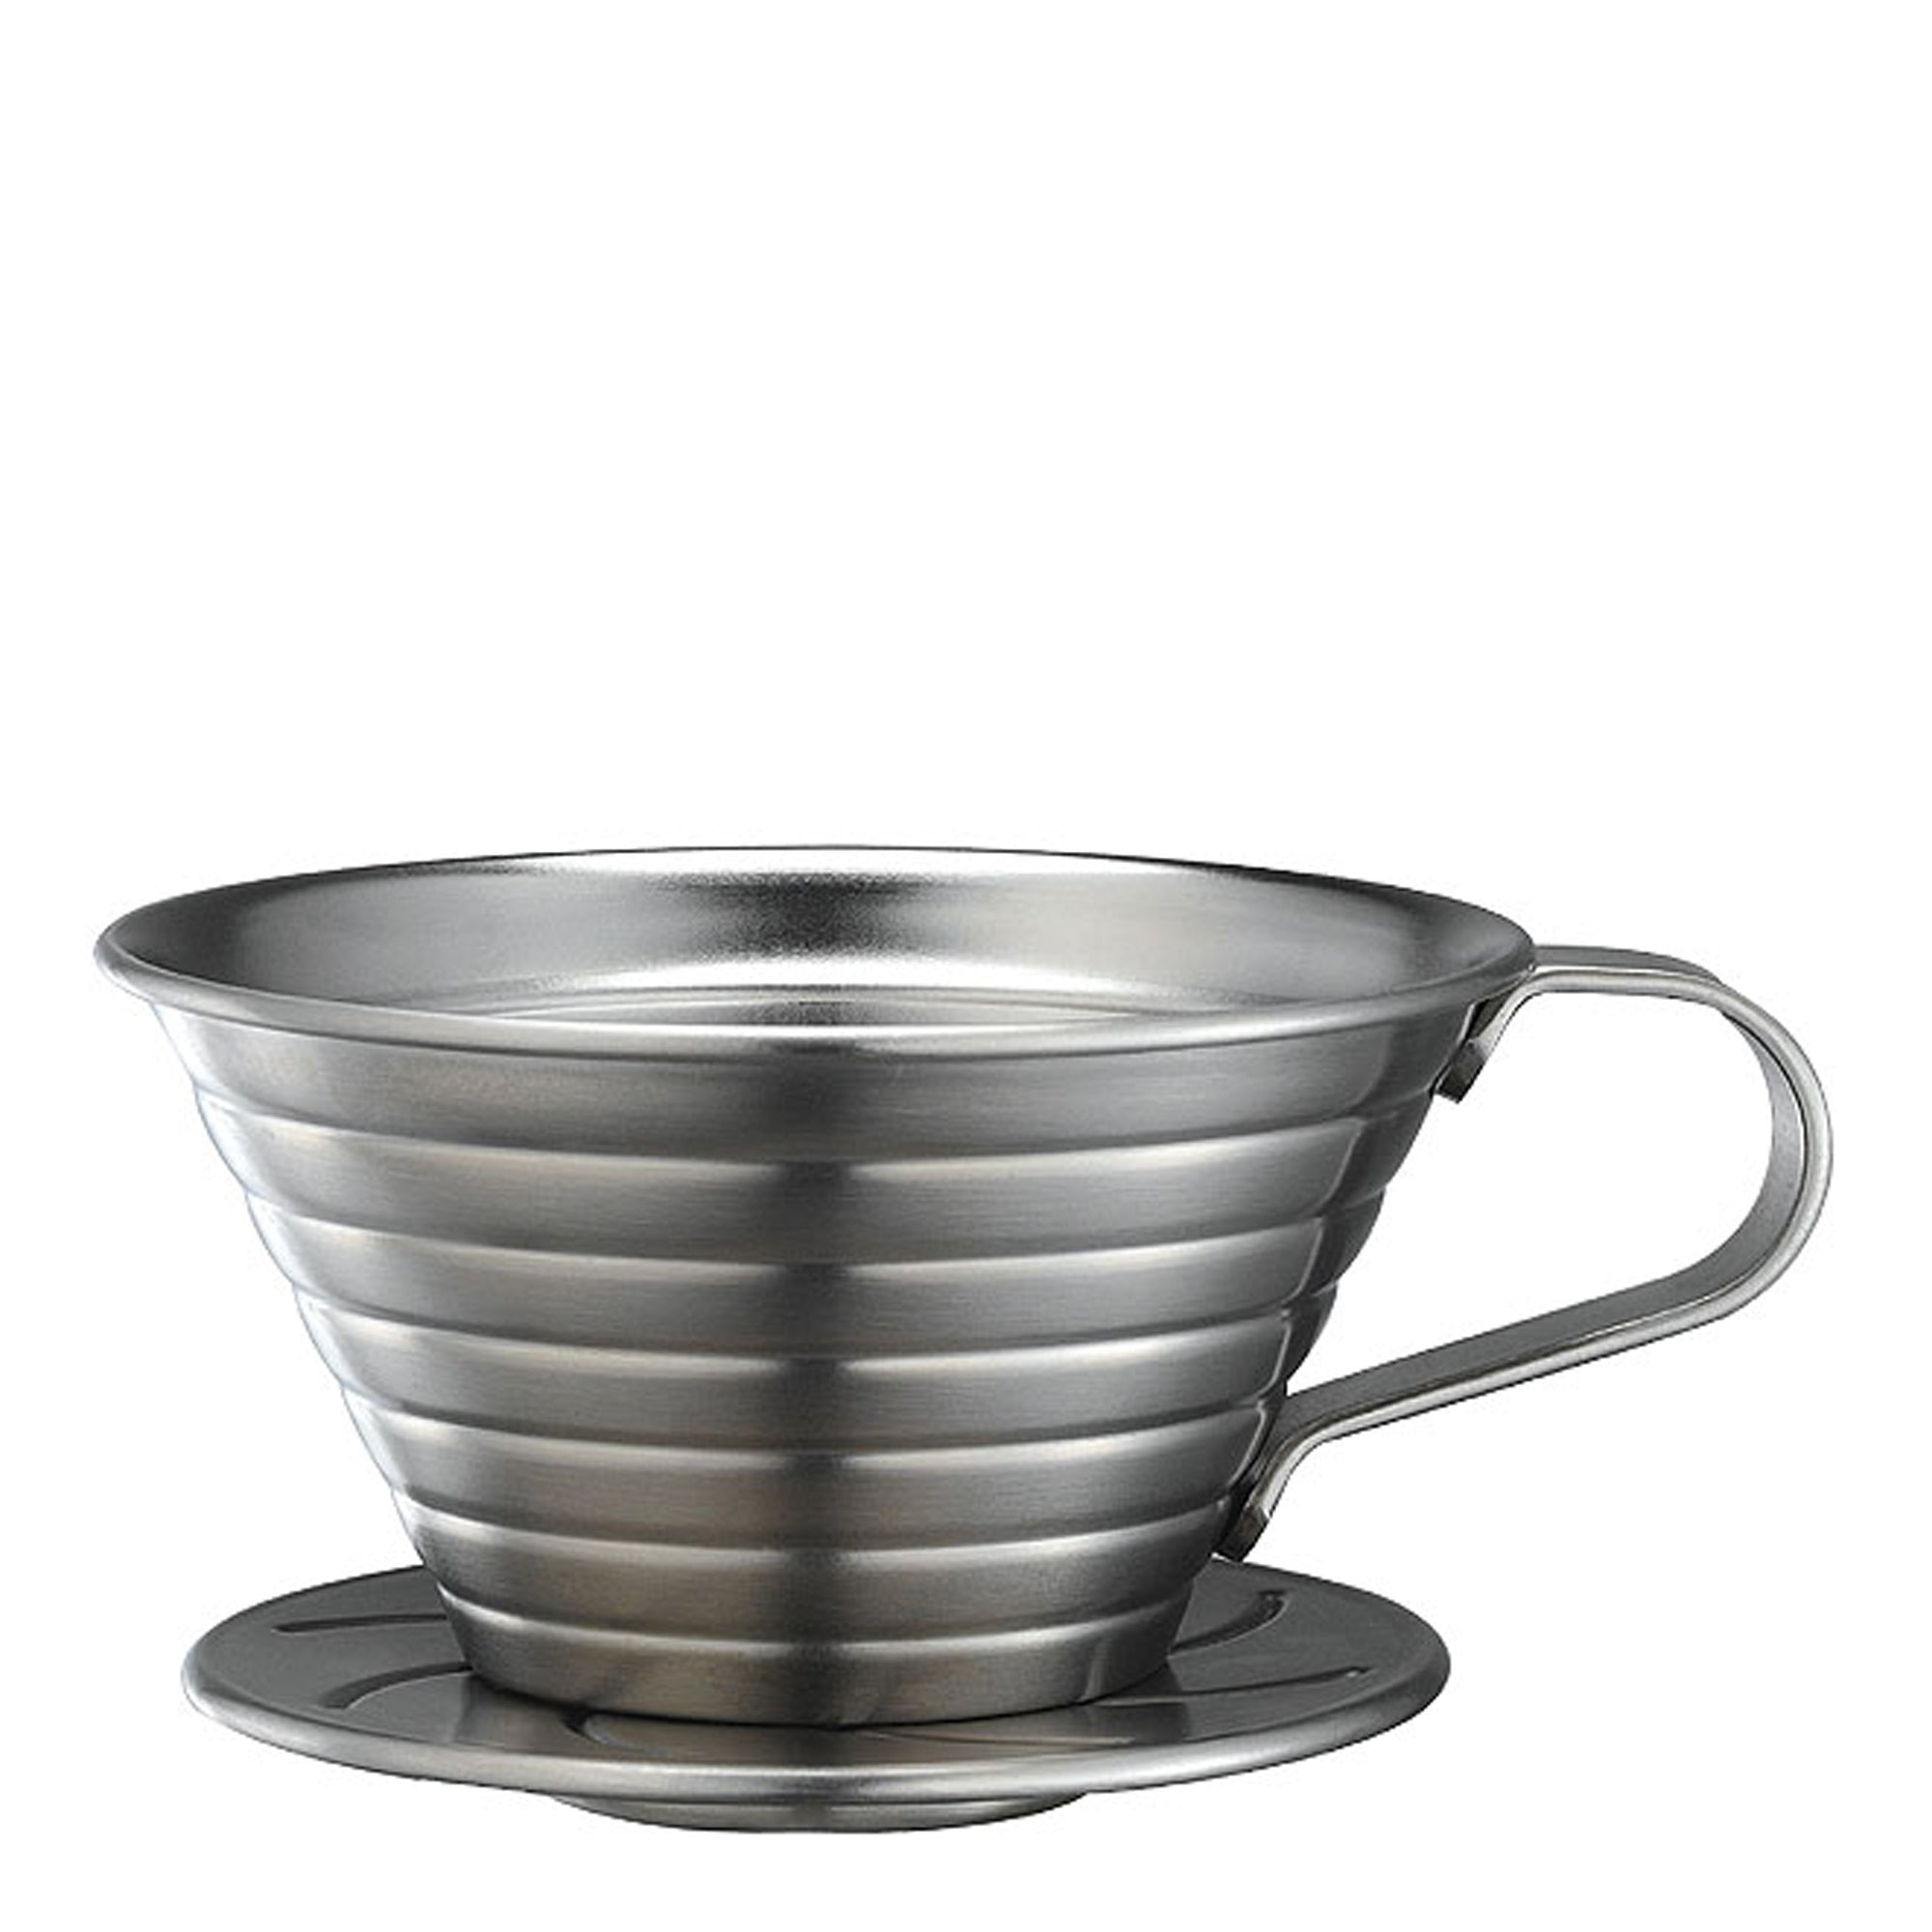 Filter K02 - stainless steel - Tiamo - Espresso Gear